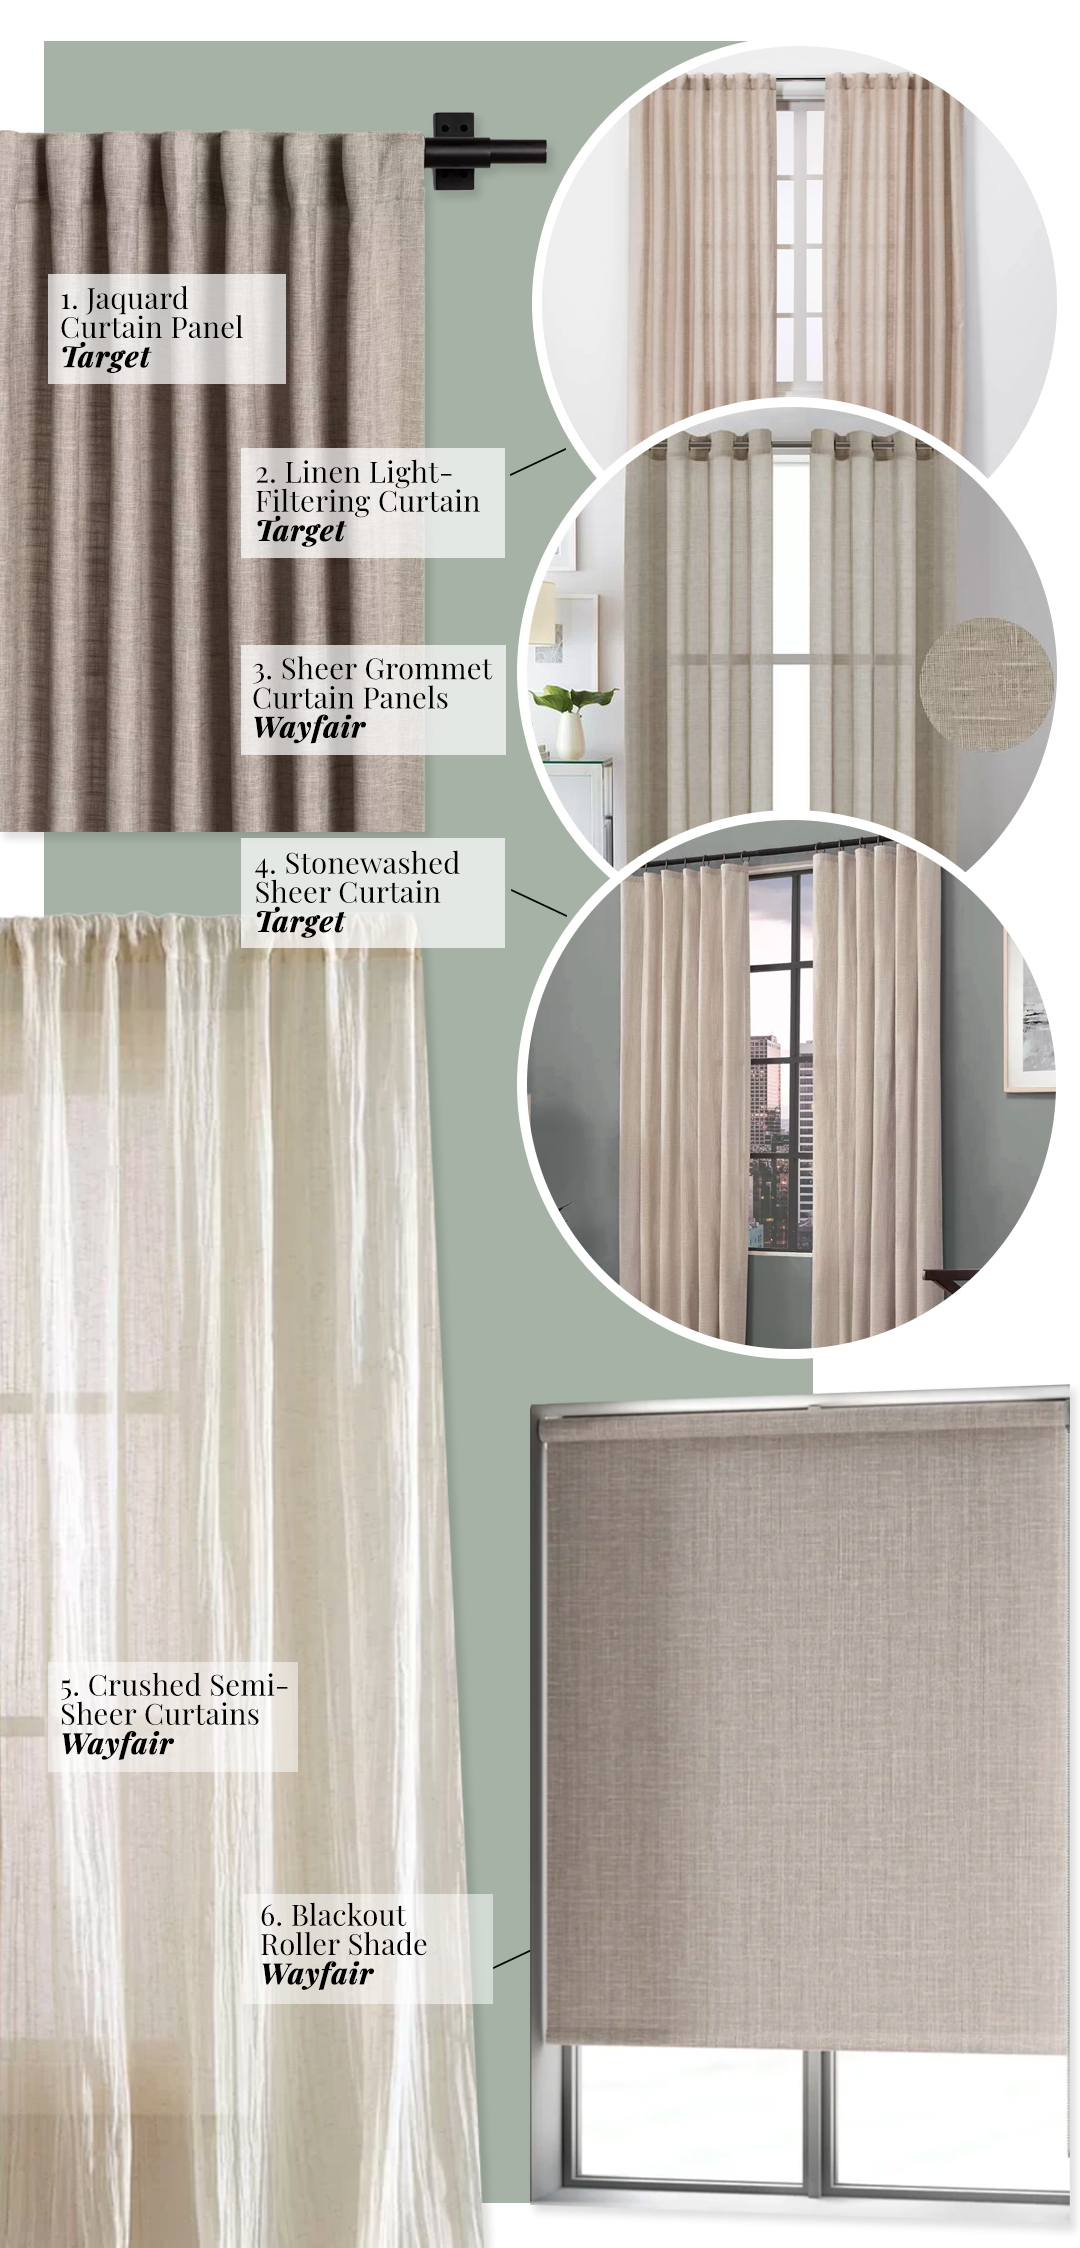 What Color Curtains Go With Sage Green Walls? Linen, Natural, Oatmeal and Beige tones add texture and warmth.